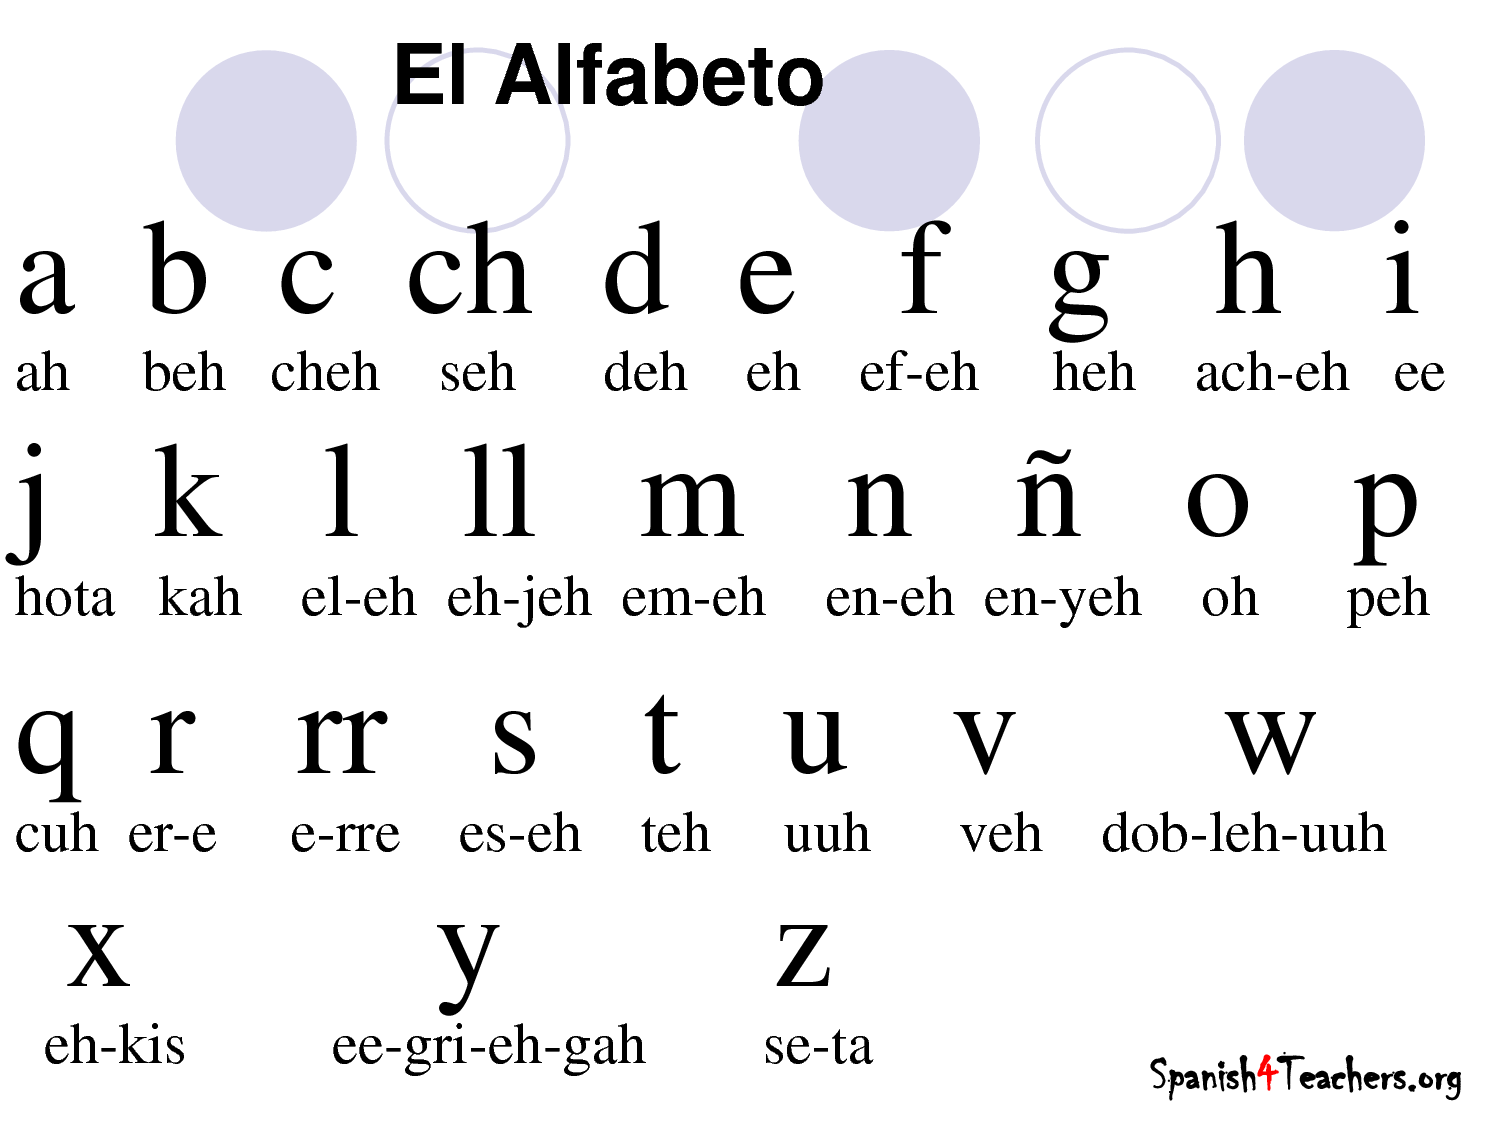 This is a chart of the spanish alphabet the main language in